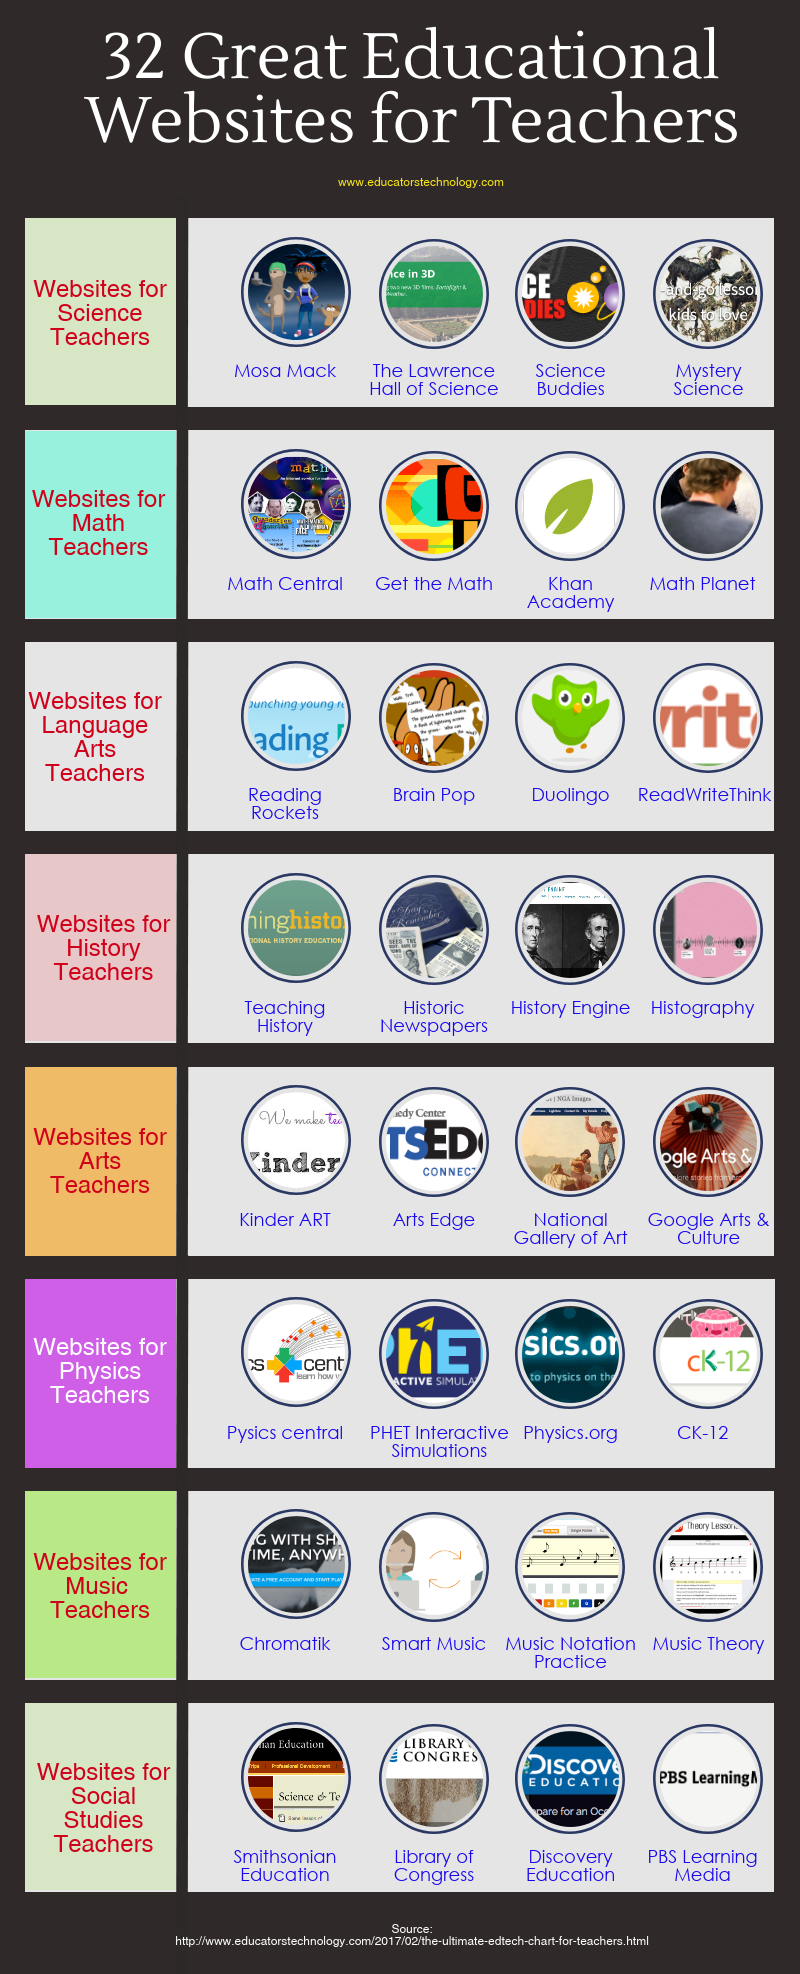 A Collection Of Some Of The Best Websites For Teachers  Here Is Another Of Our Popular Visuals We Published In  The Visual Features Some Good Educational Web Tools And Websites To Help You In Your Te is part of Teacher websites -